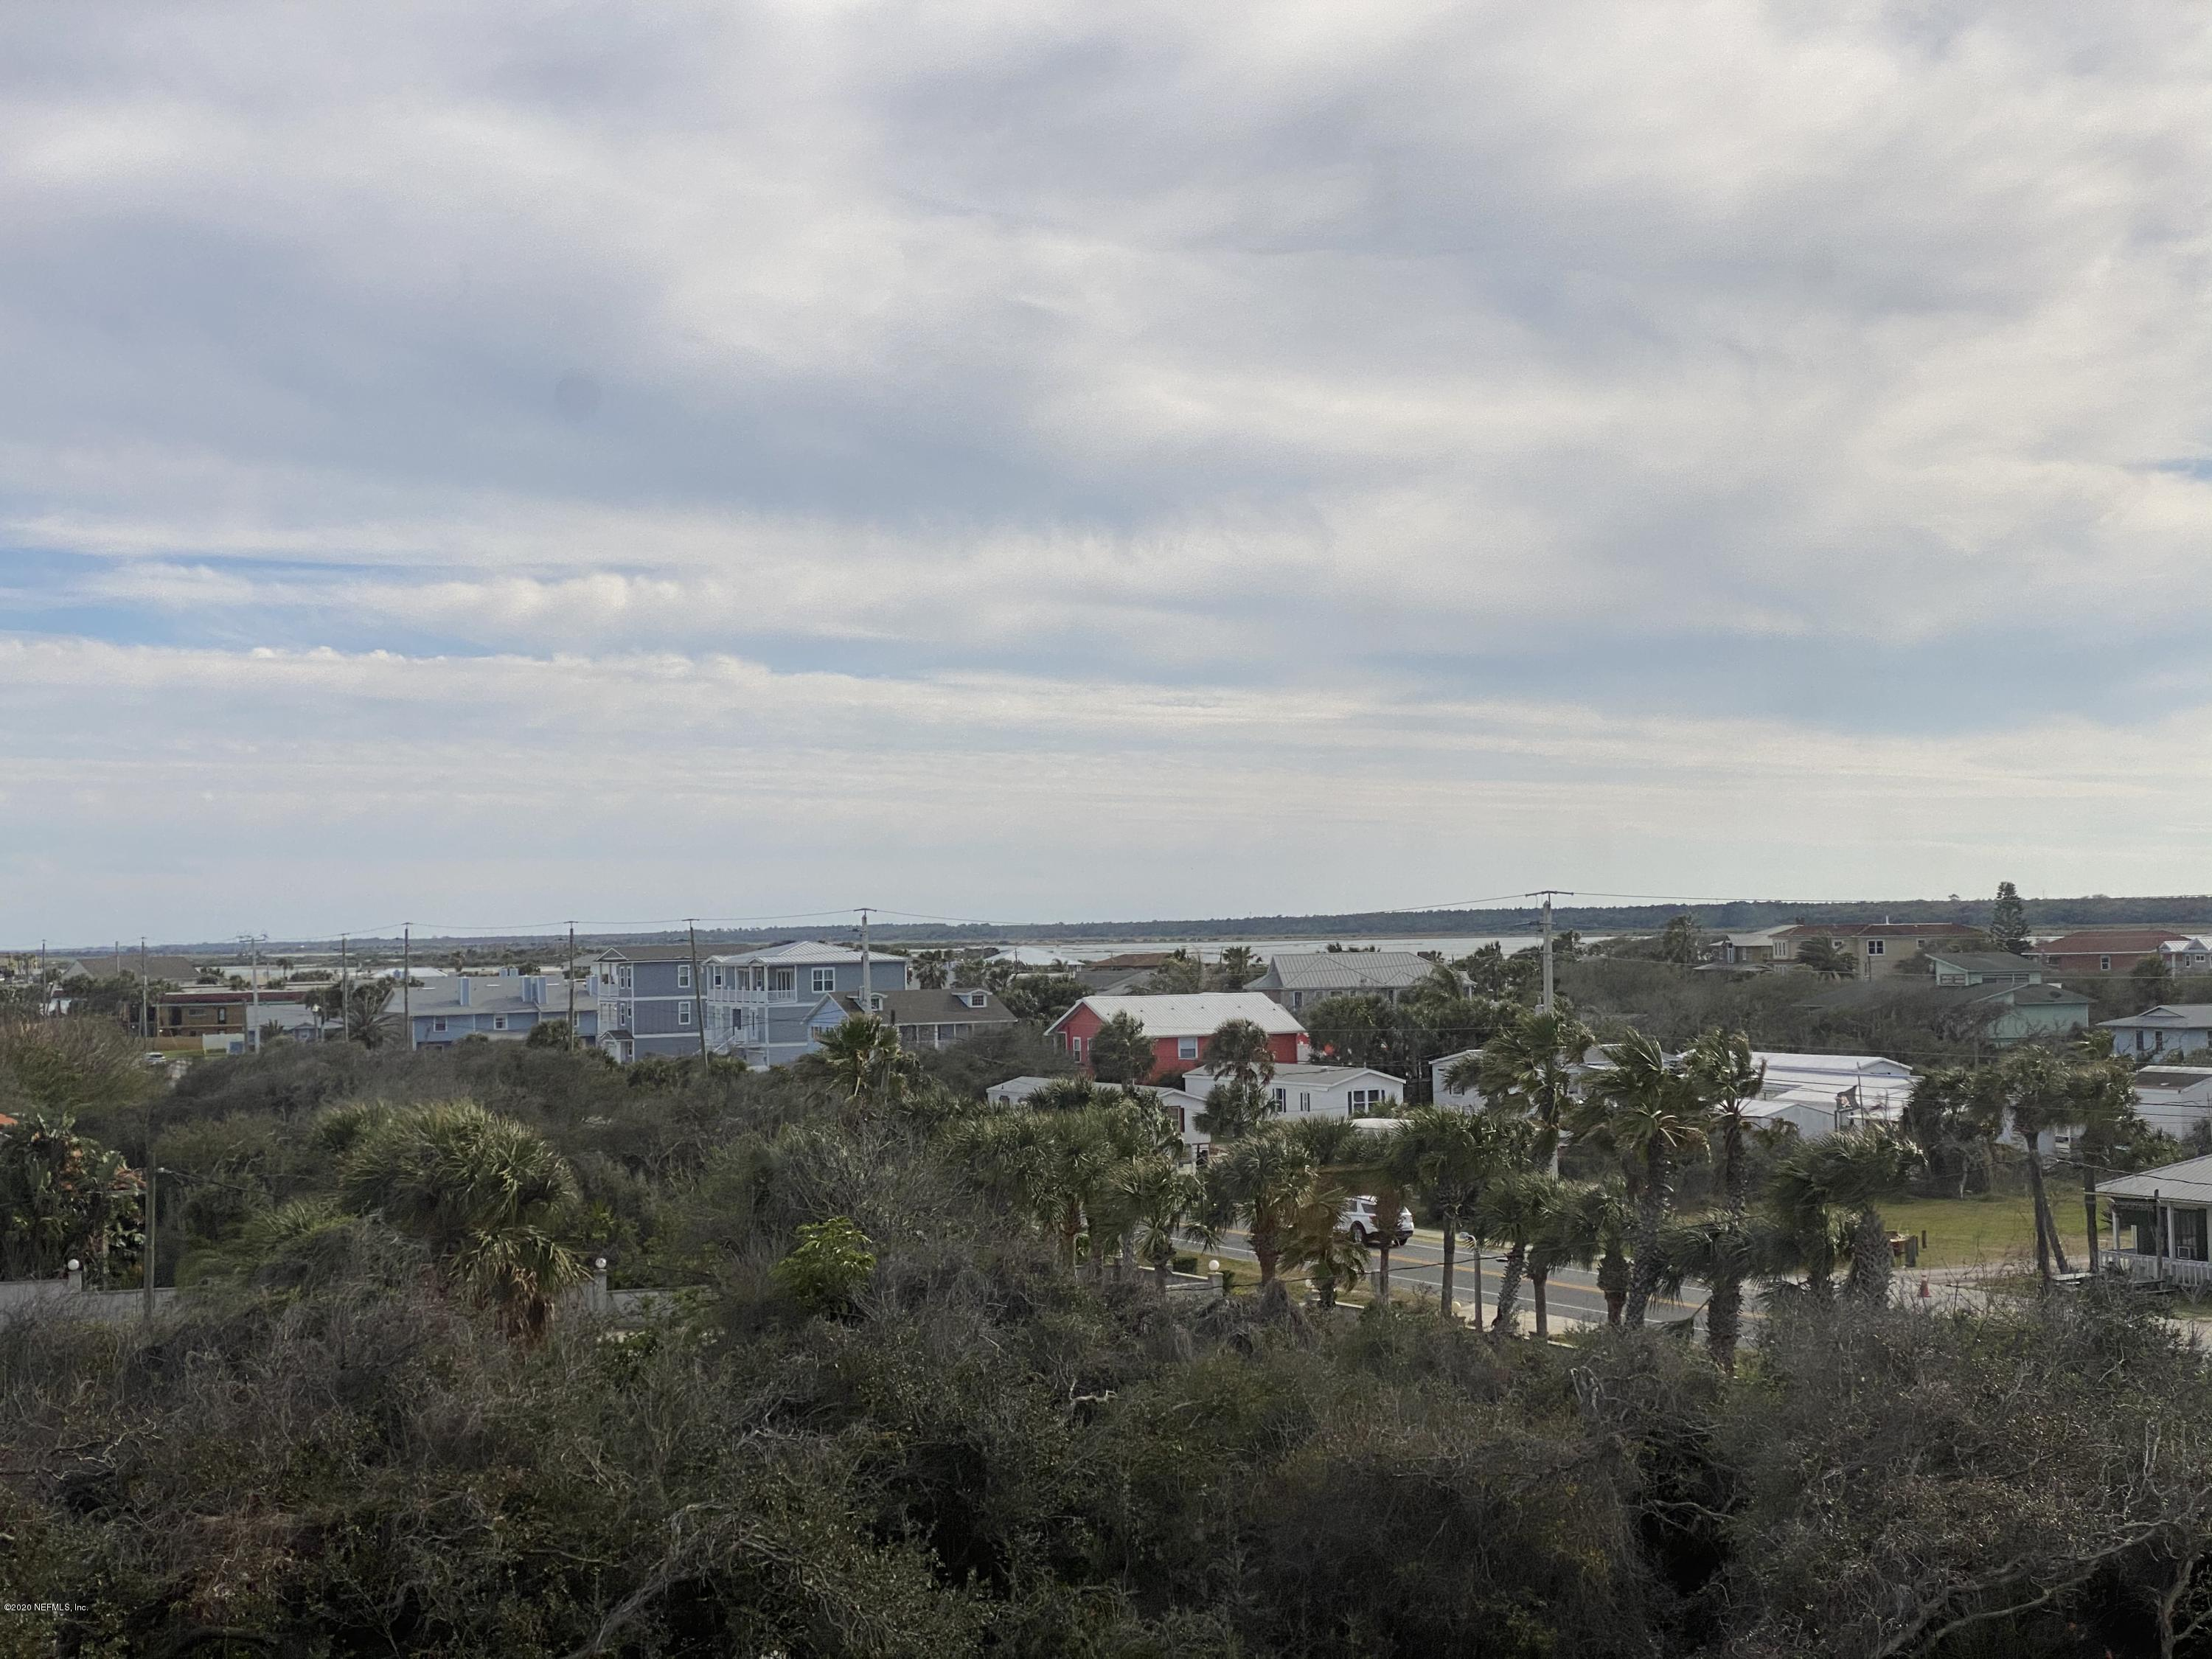 6970 A1A, ST AUGUSTINE, FLORIDA 32080, 1 Bedroom Bedrooms, ,1 BathroomBathrooms,Residential,For sale,A1A,1044978